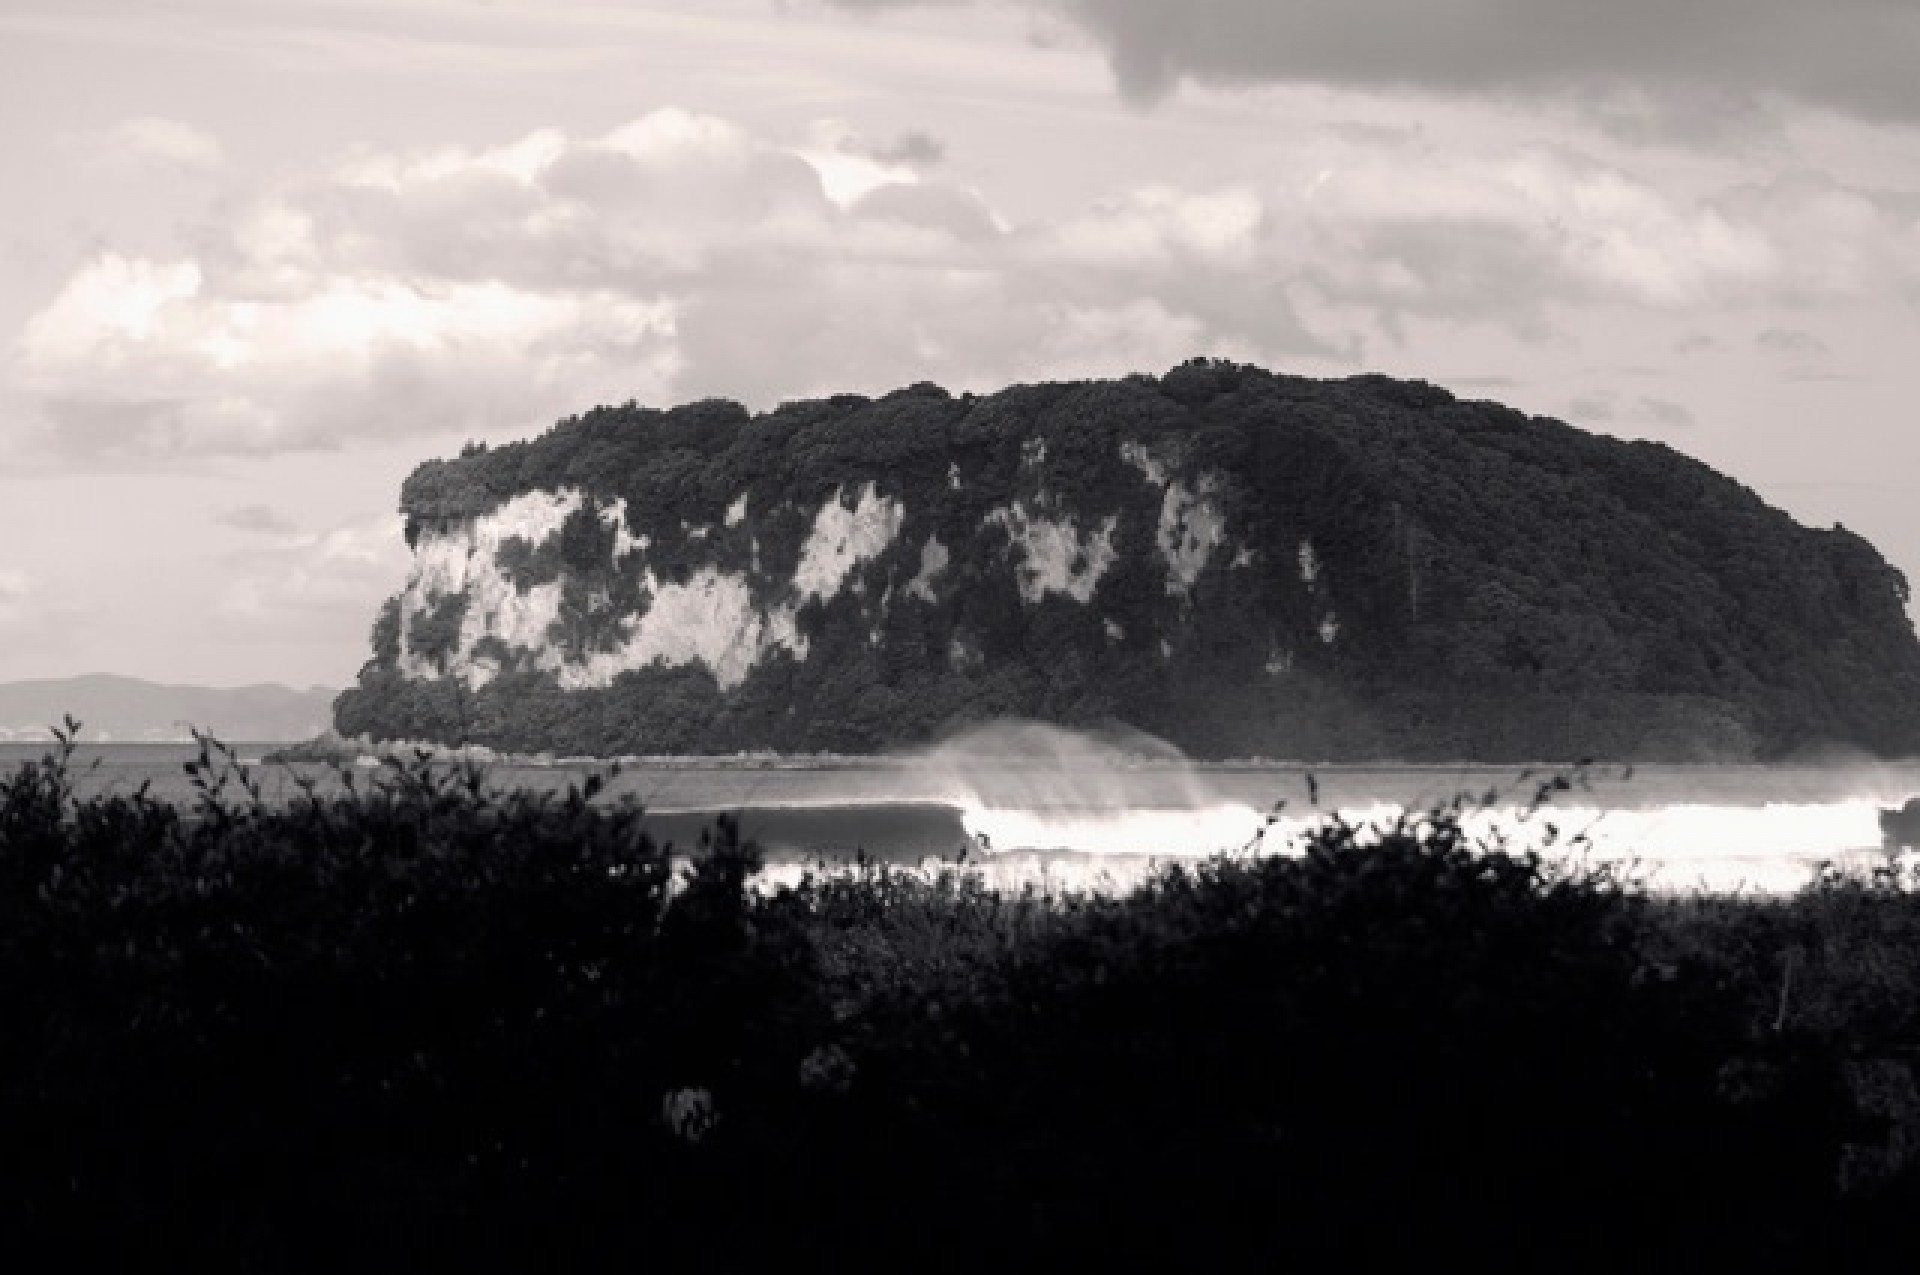 Digga's photo of Whangamata